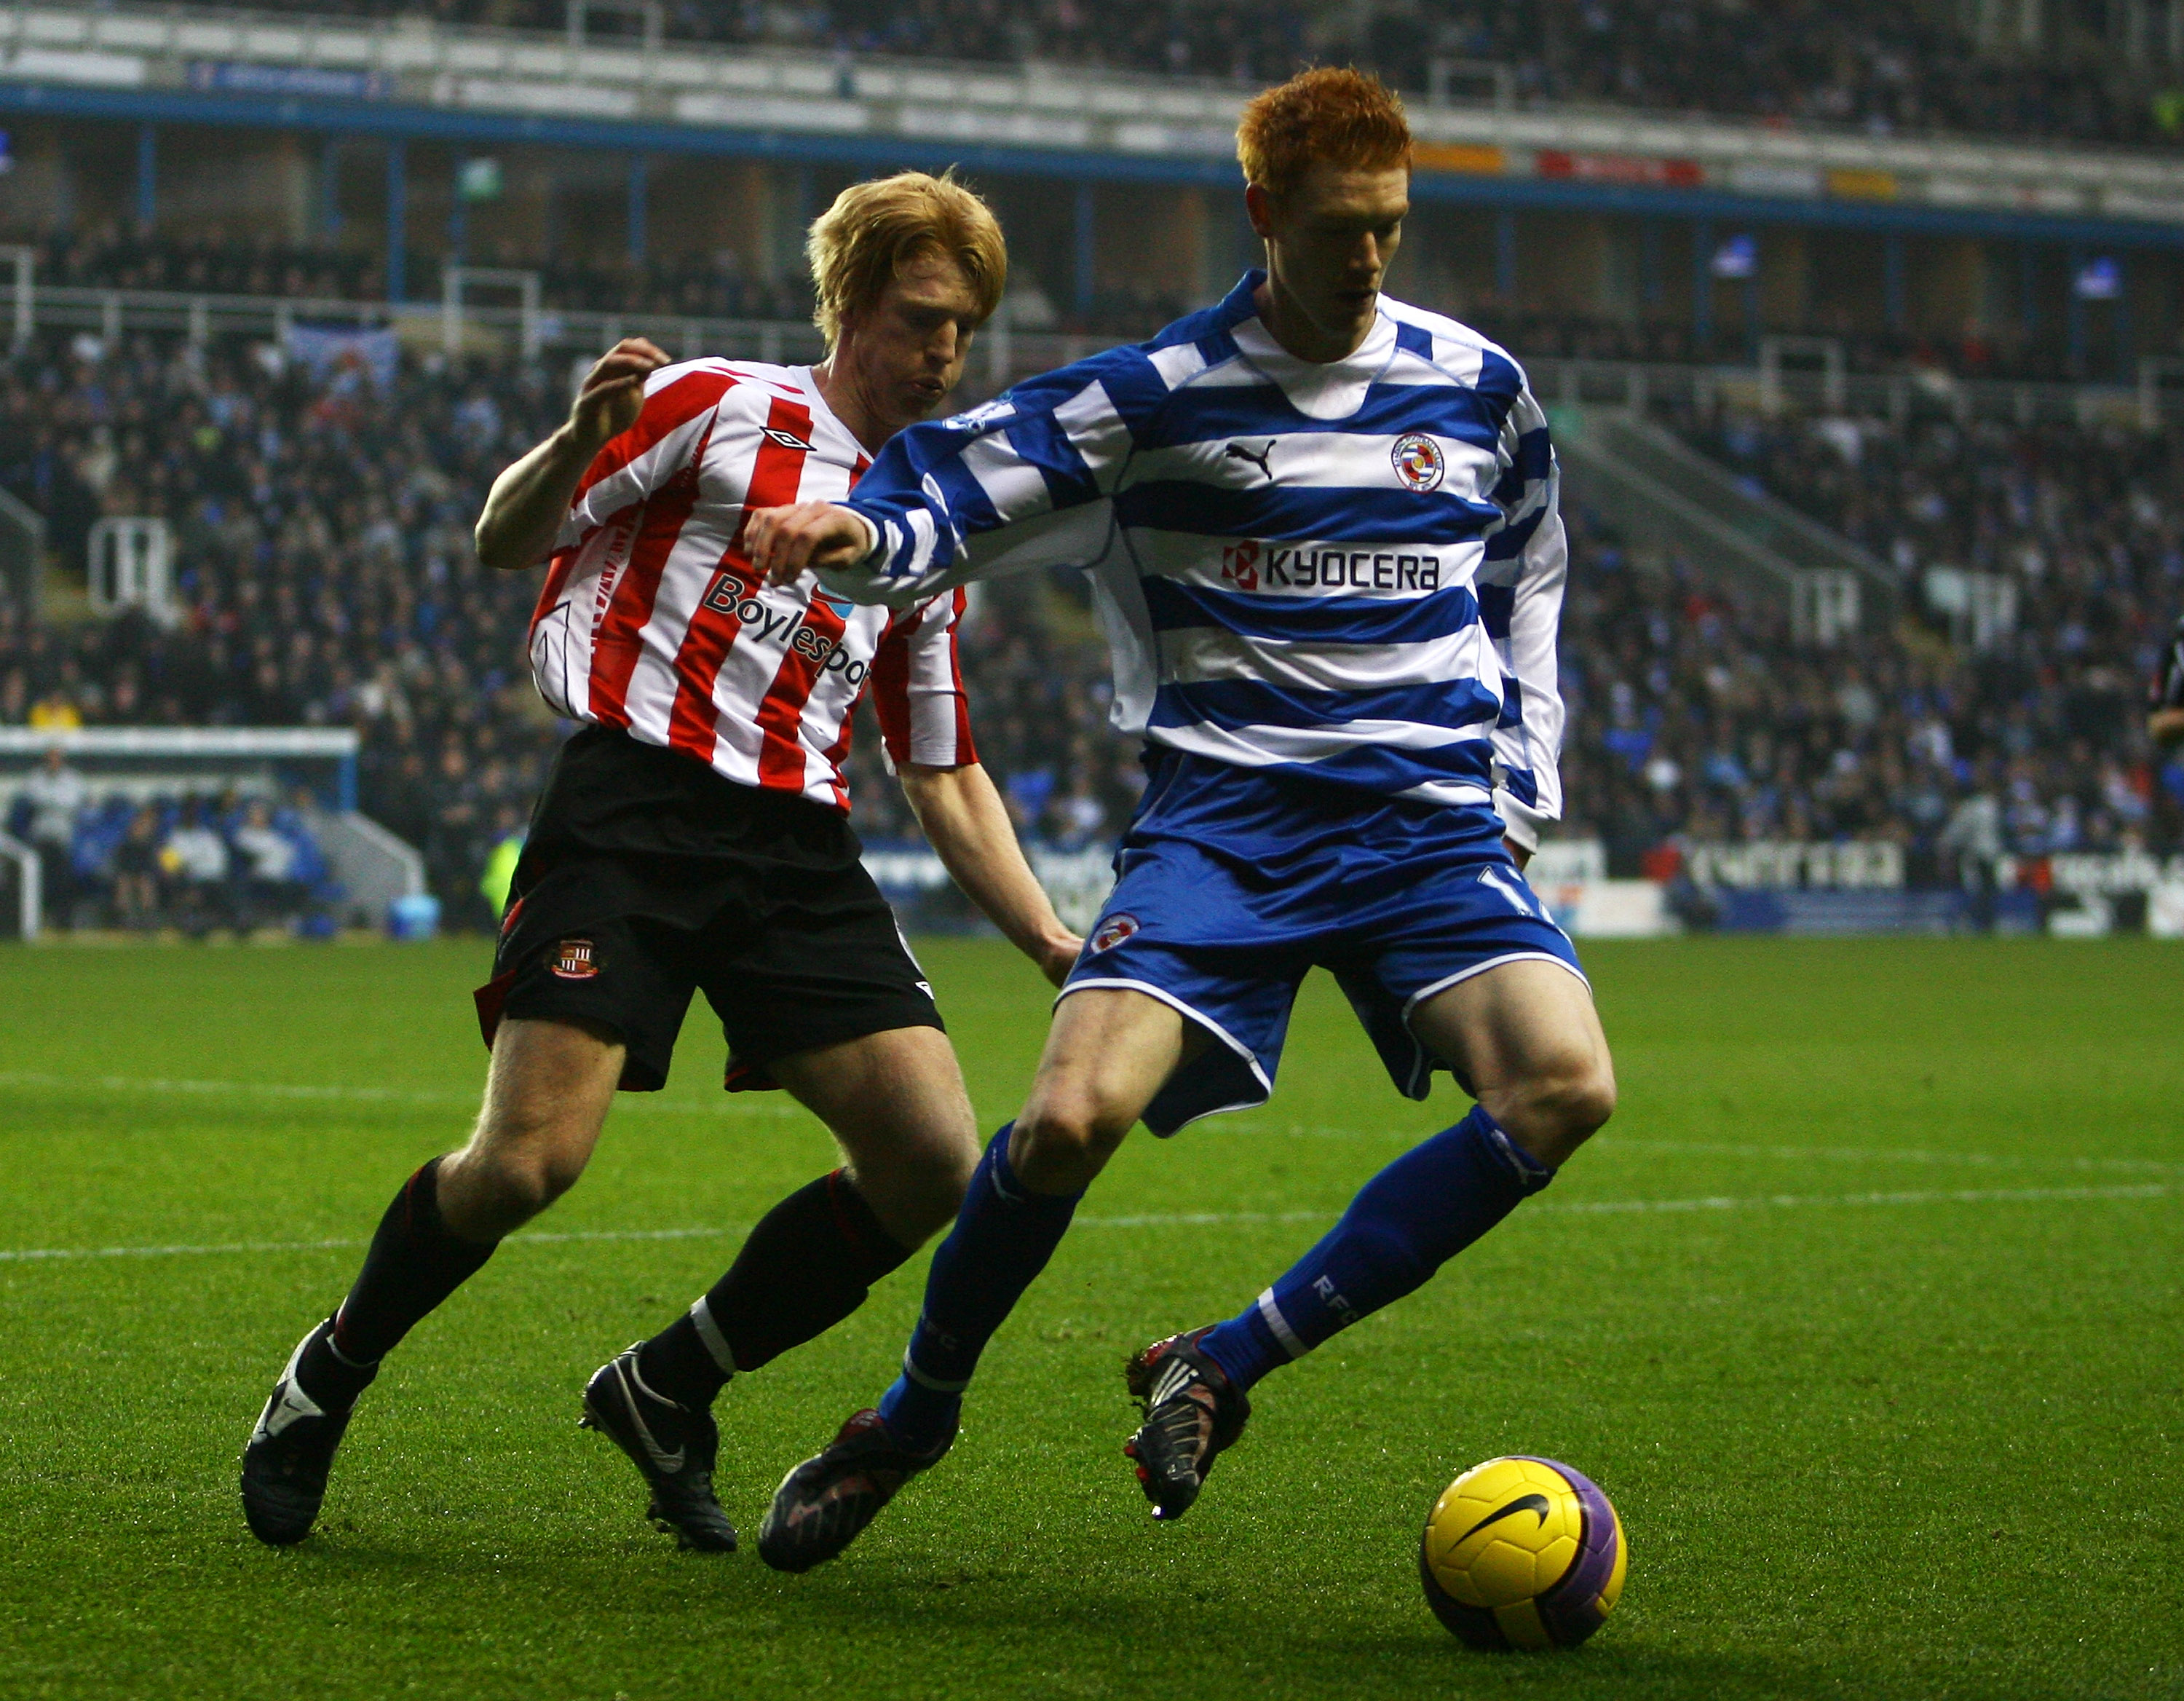 At least he's got experience of playing at the Madejski...